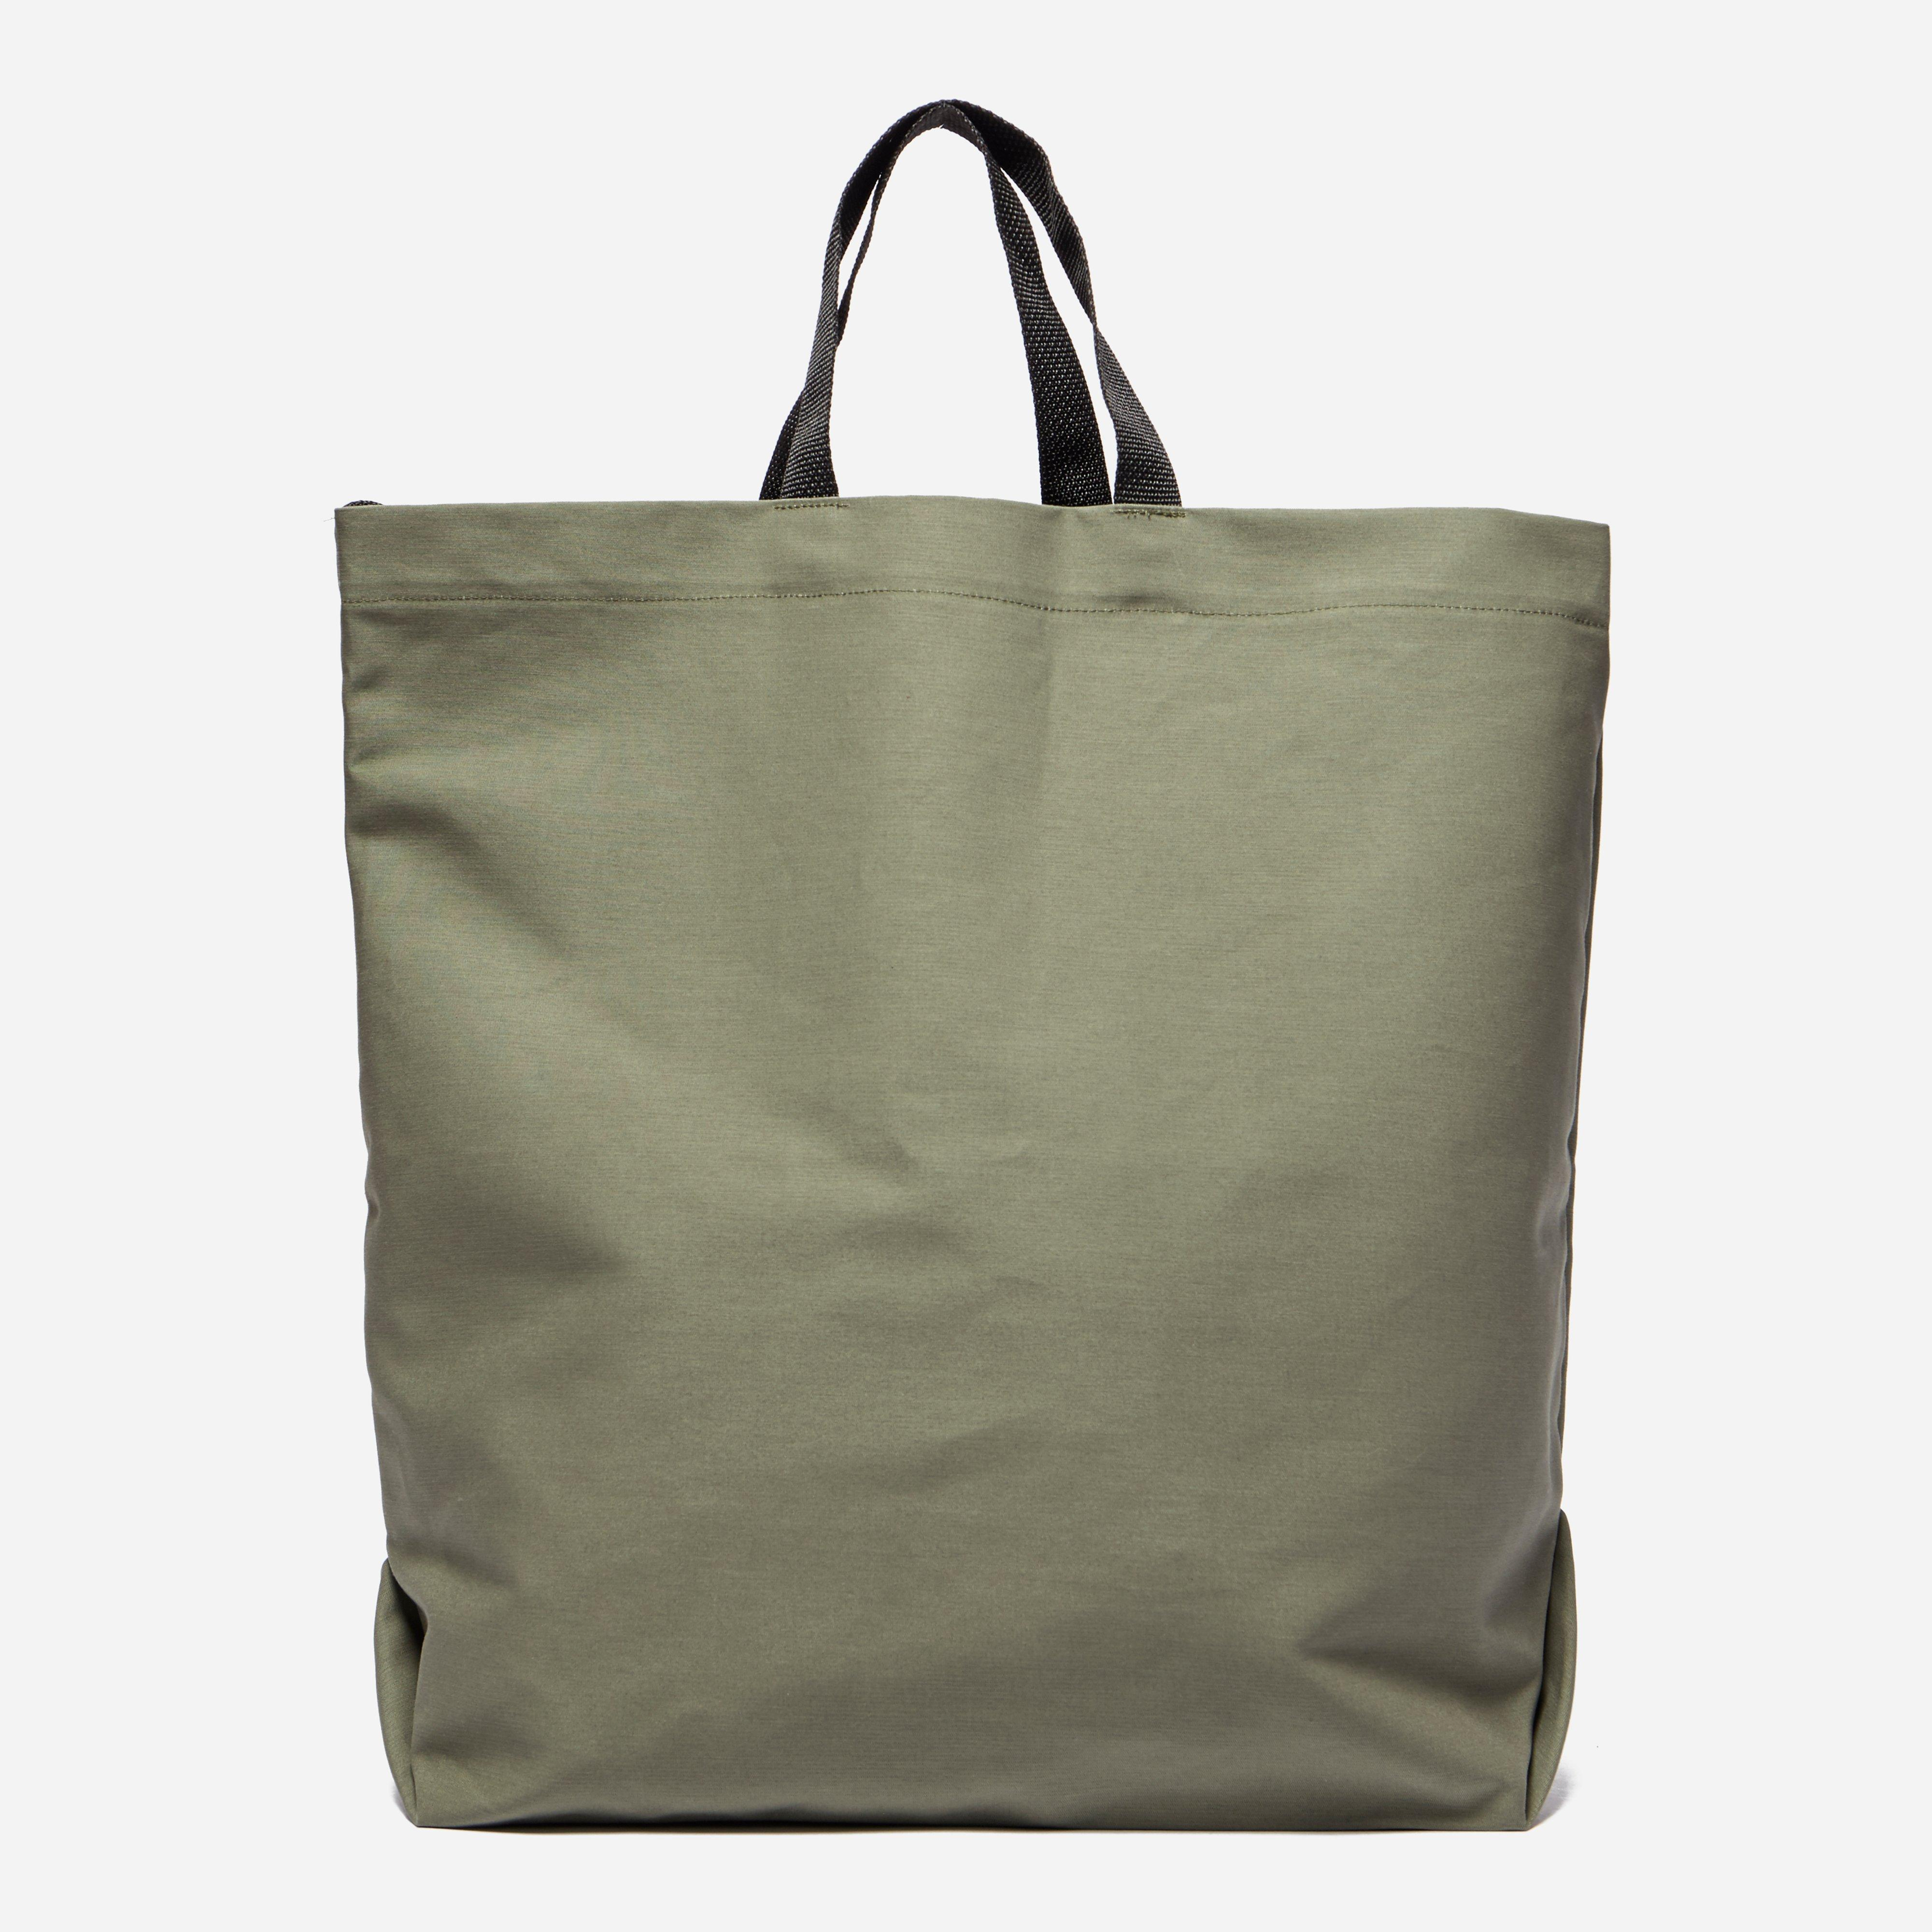 Engineered Garments Carry All Tote Bag - Cotton Double Cloth